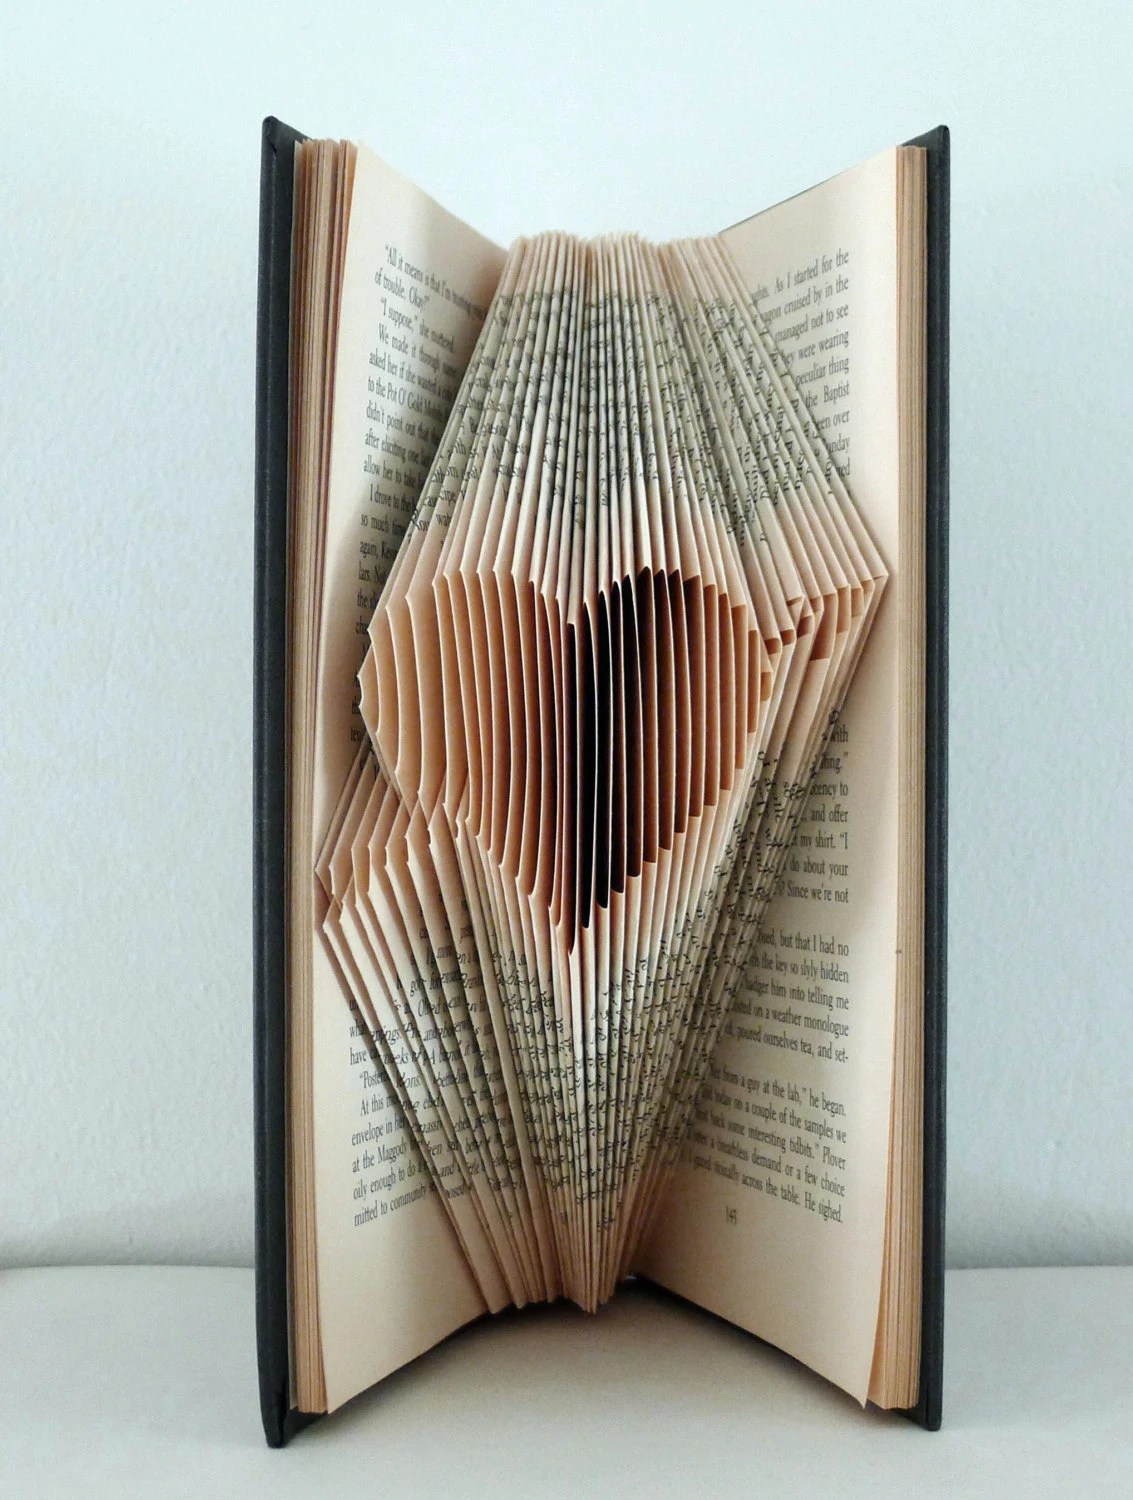 Gift for Boyfriend - Girlfriend - Anniversary Gift - Small Heart with Arrow - I Love You - Recycled Art - Love